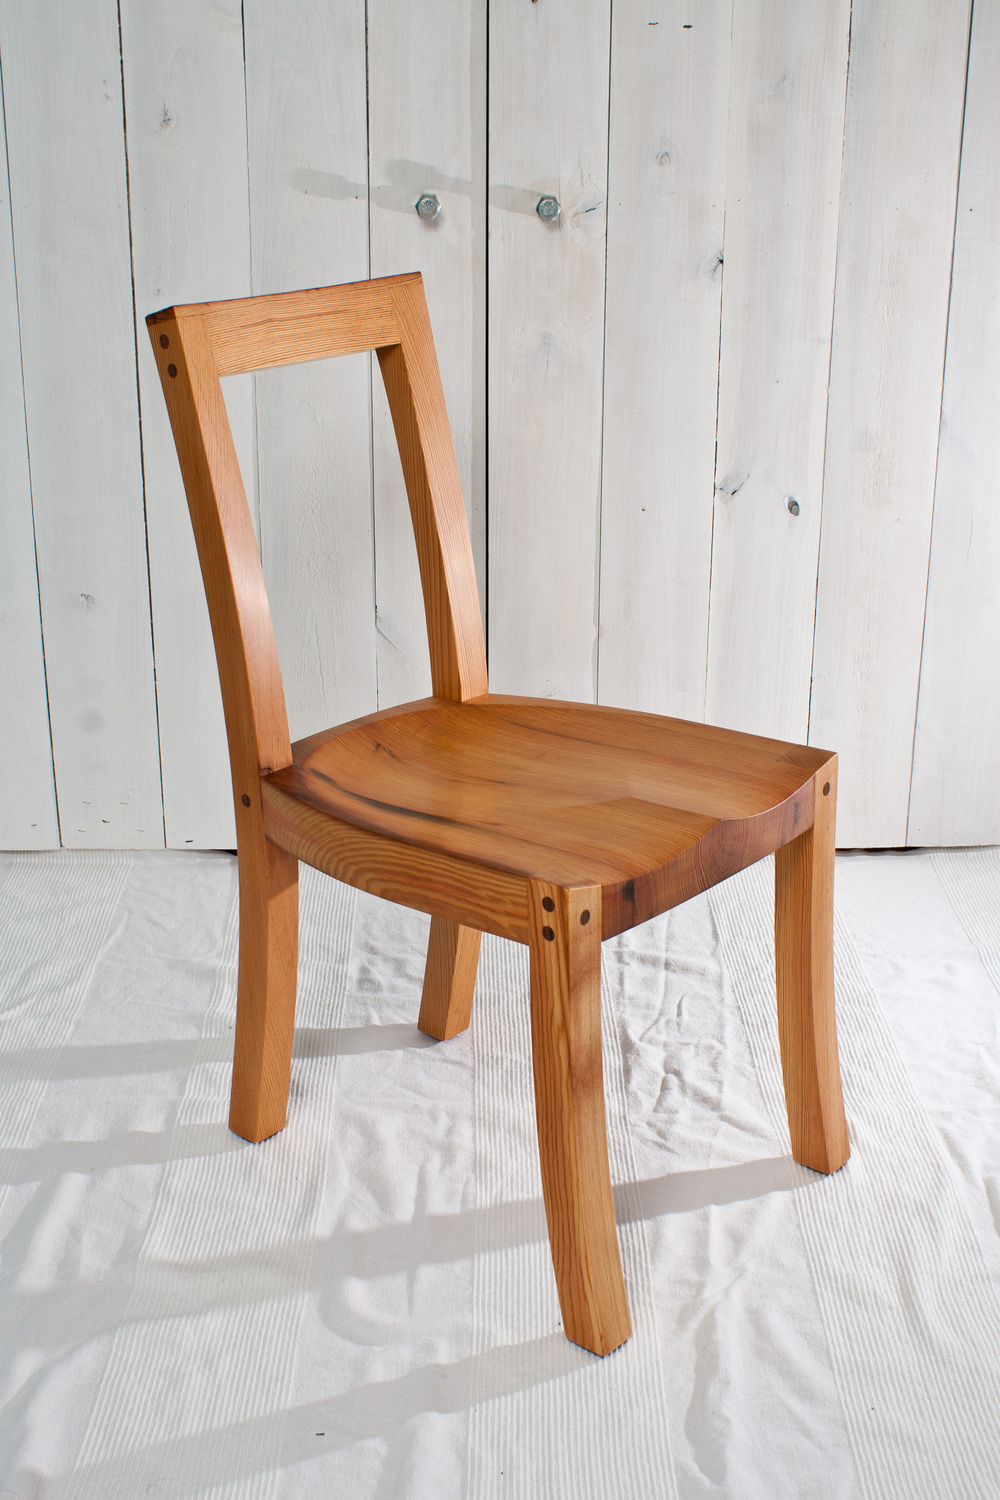 Reclaimed Heart Pine Chair